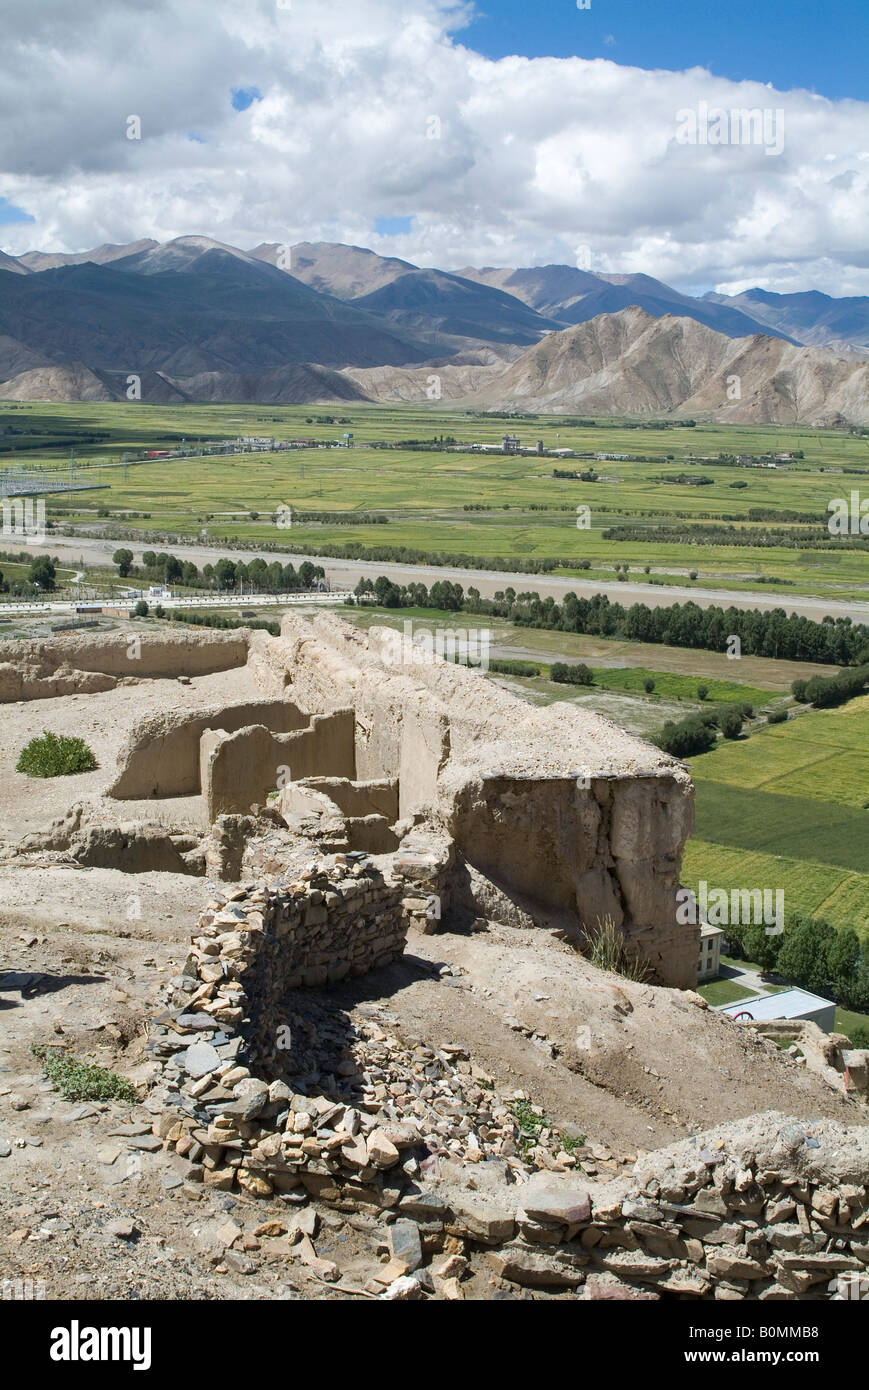 View from the Fort overlooking countryside in Gyantse, Tibet, China. - Stock Image